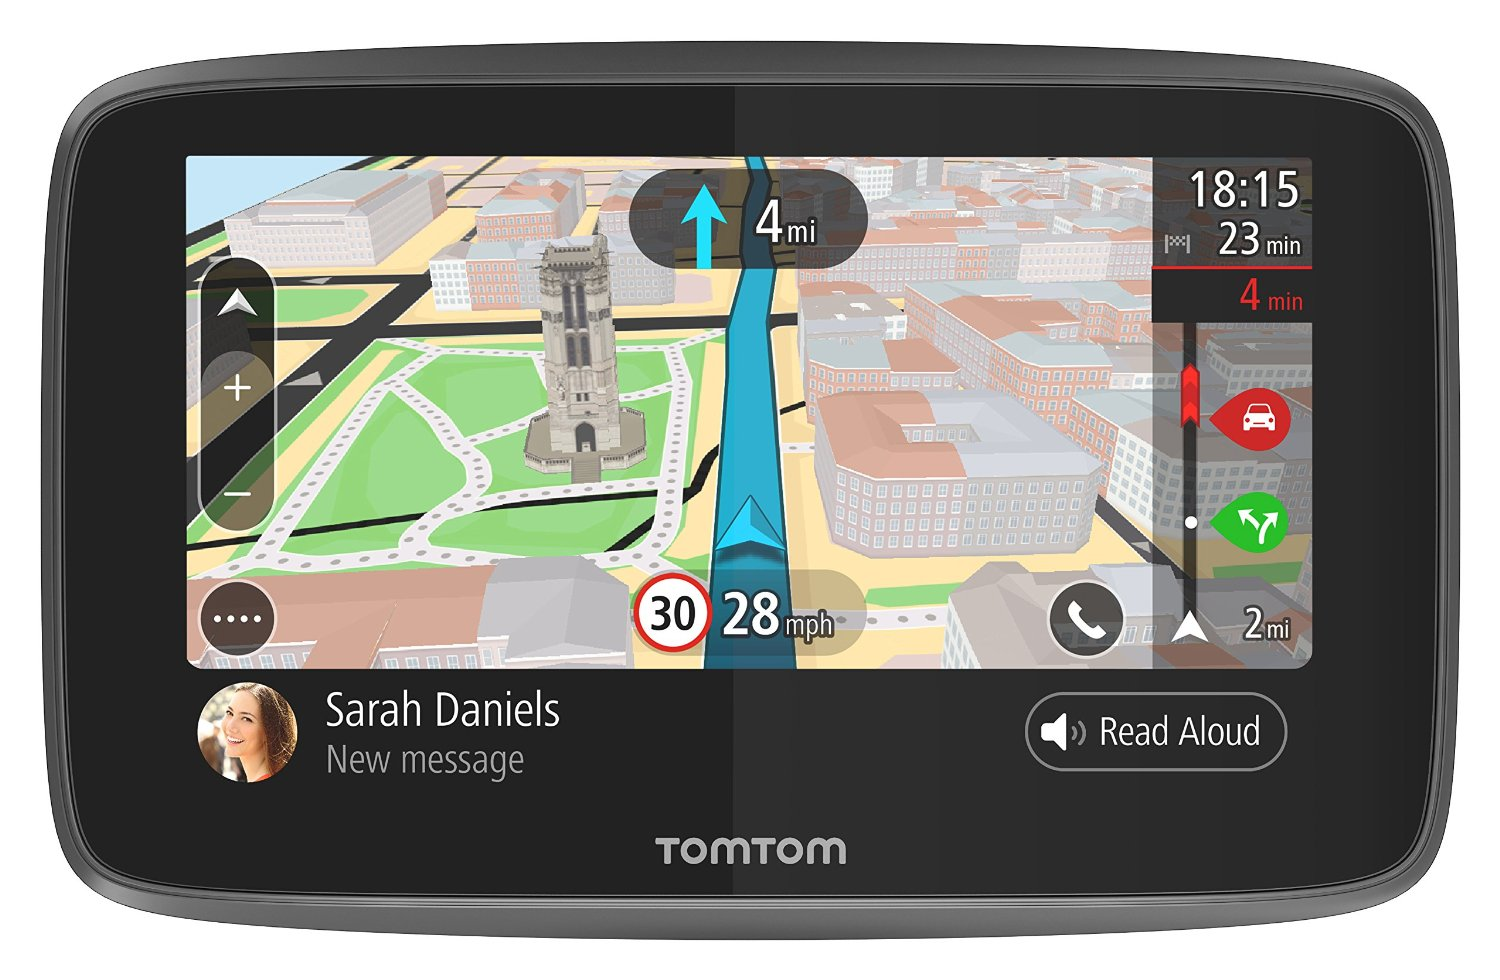 TomTom GO  SATNAV With WiFi Free Lifetime World Maps Amp - Tomtom gps usa map download free